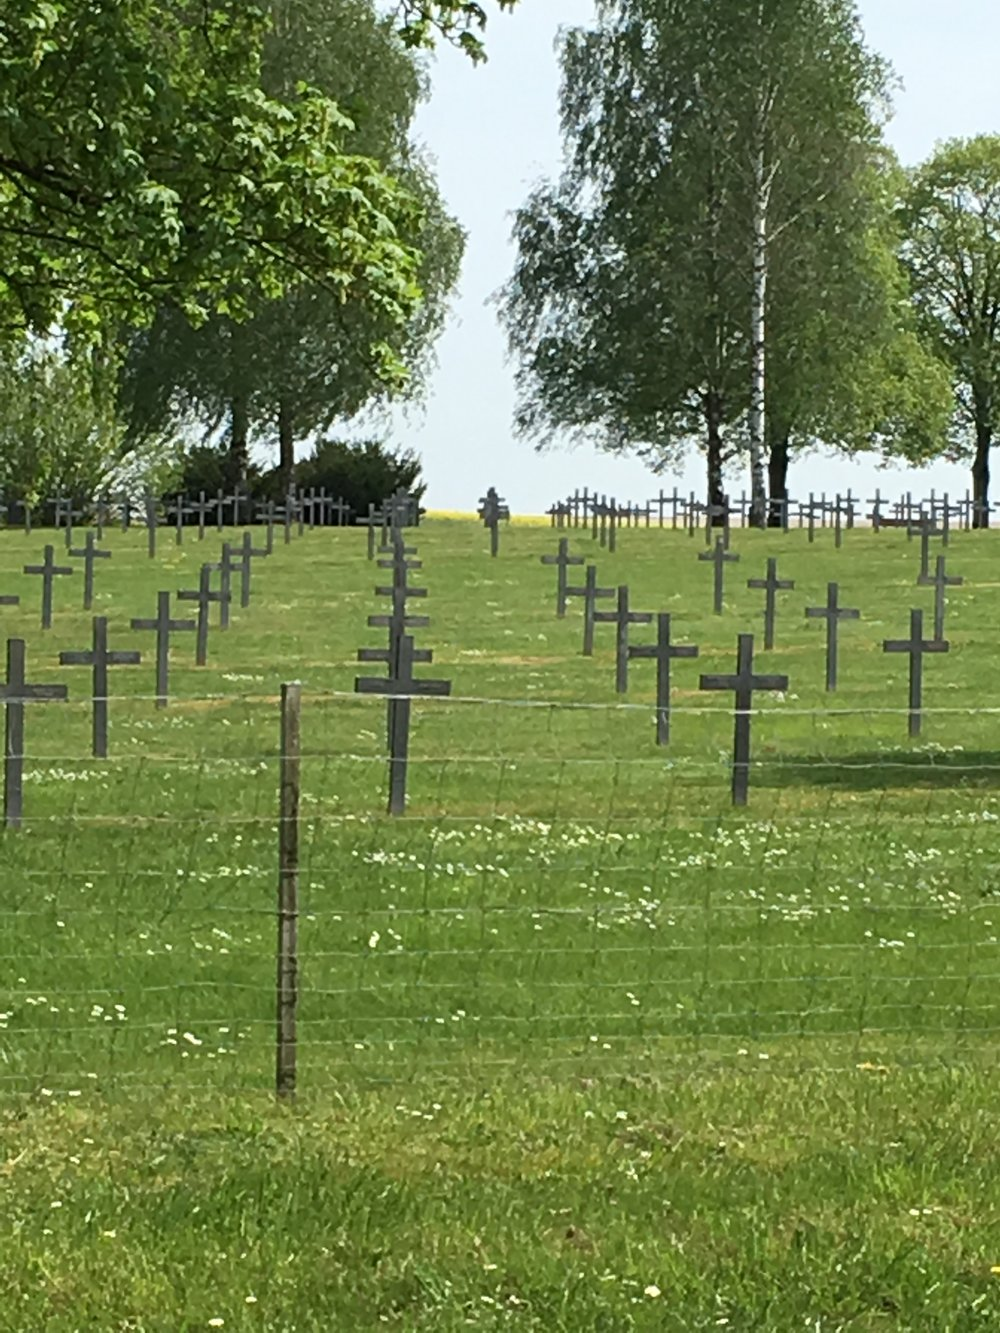 German cemetery, Saint-Étienne-à-Arnes, France